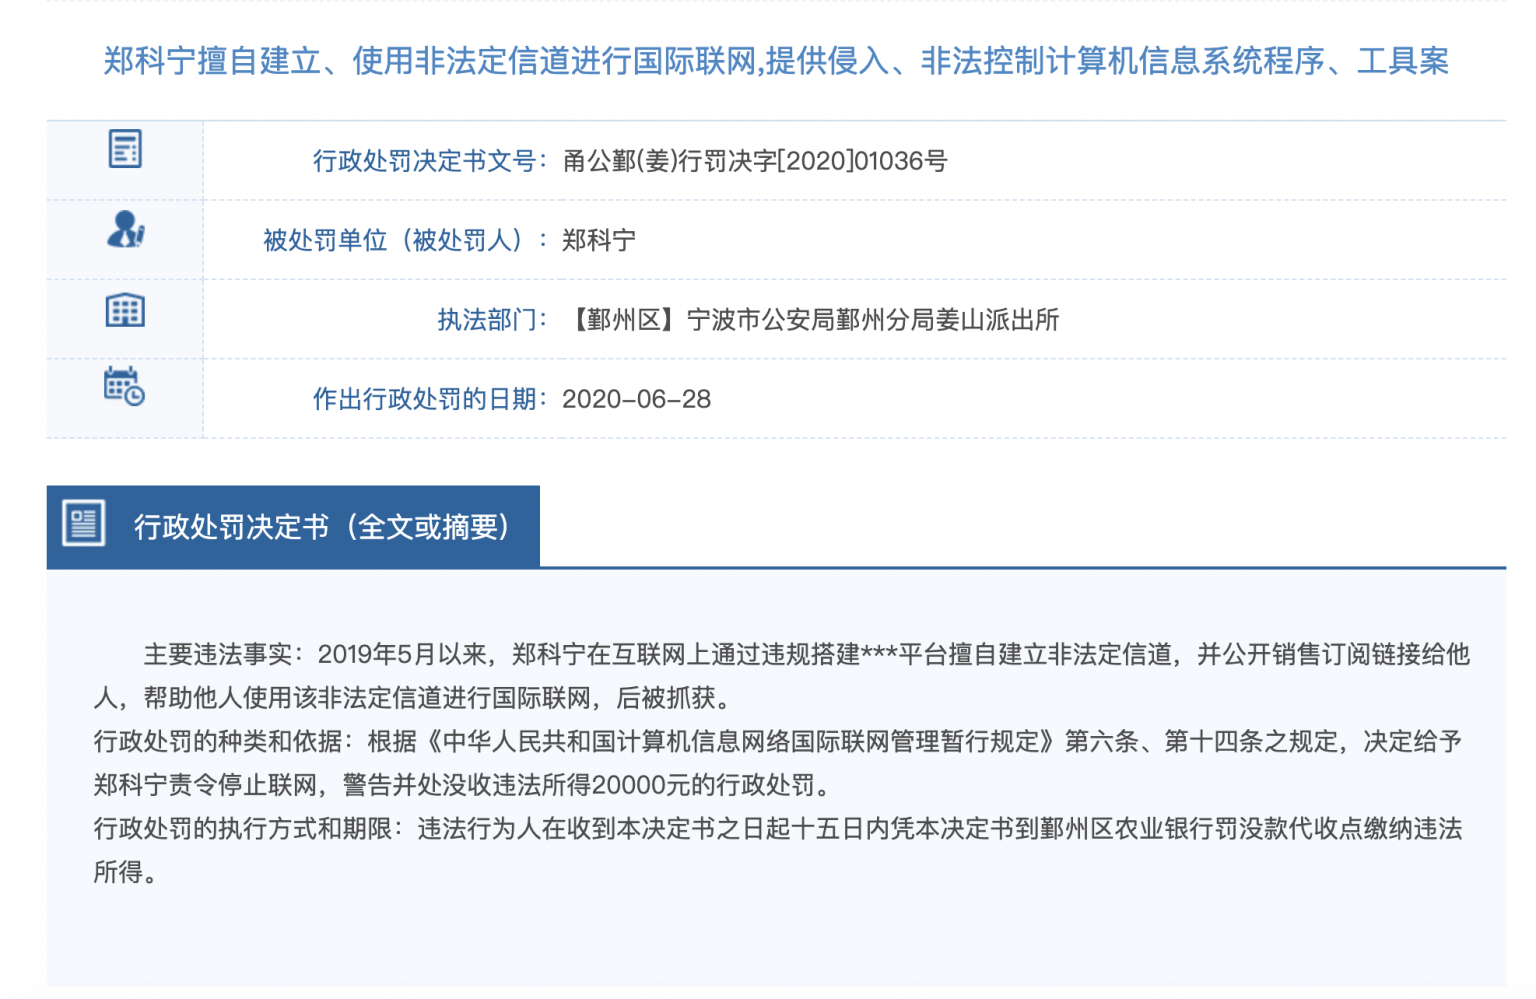 Case of an individual charged with selling subscriptions to their circumvention platform. Their network connection was suspended and 20,000 yuan in profits seized